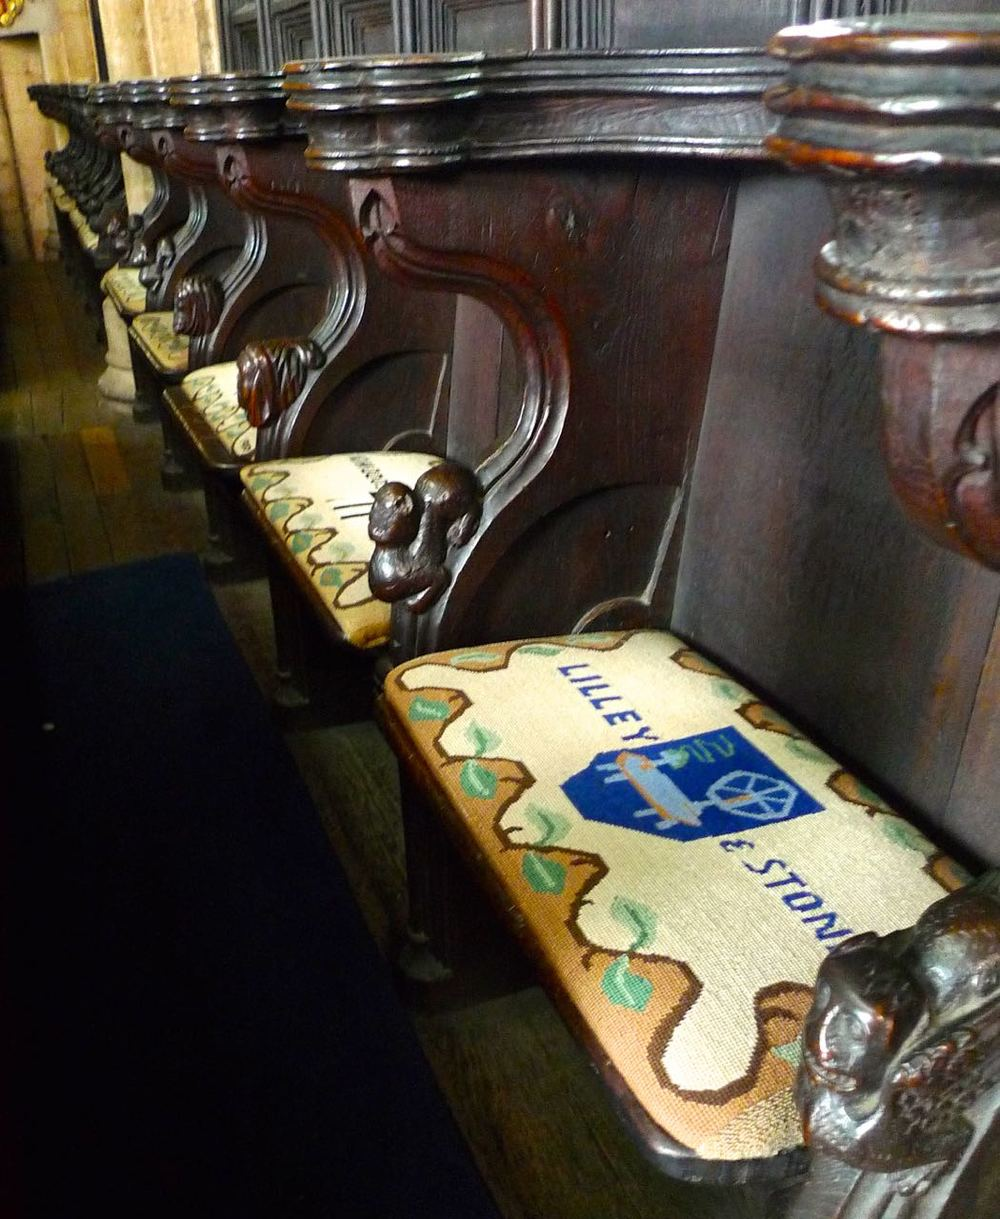 A CLOSER LOOK AT THE CHOIR STALLS